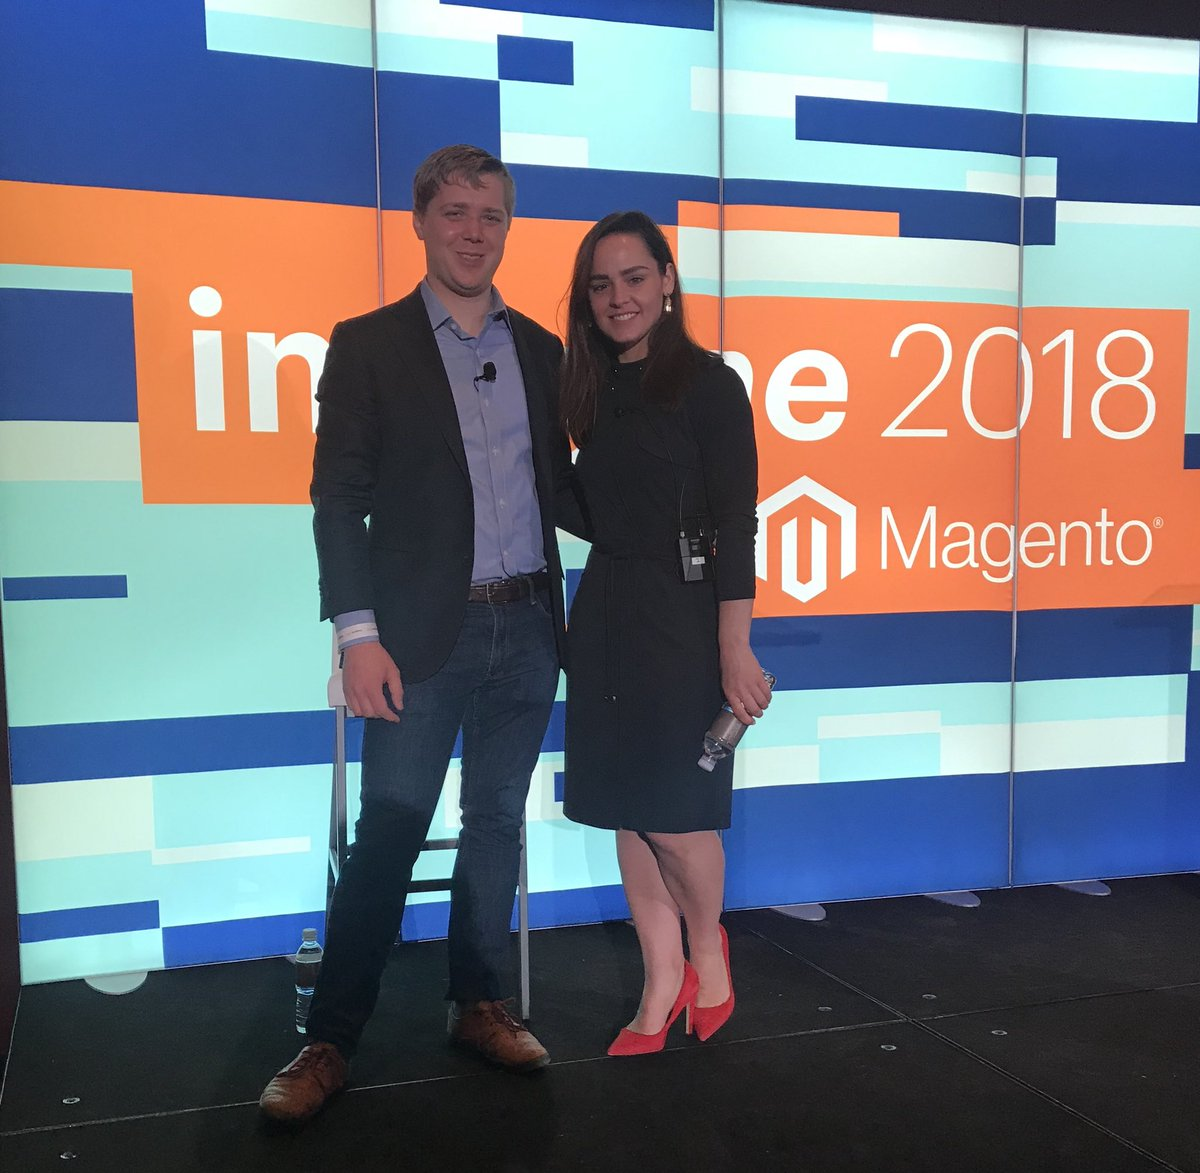 hkmiddle: Magento U presents Magento Business Intelligence - the experts, Leah and Nate! #roadtoimagine #imagine2018 @magento https://t.co/ii1RW9r9Z2